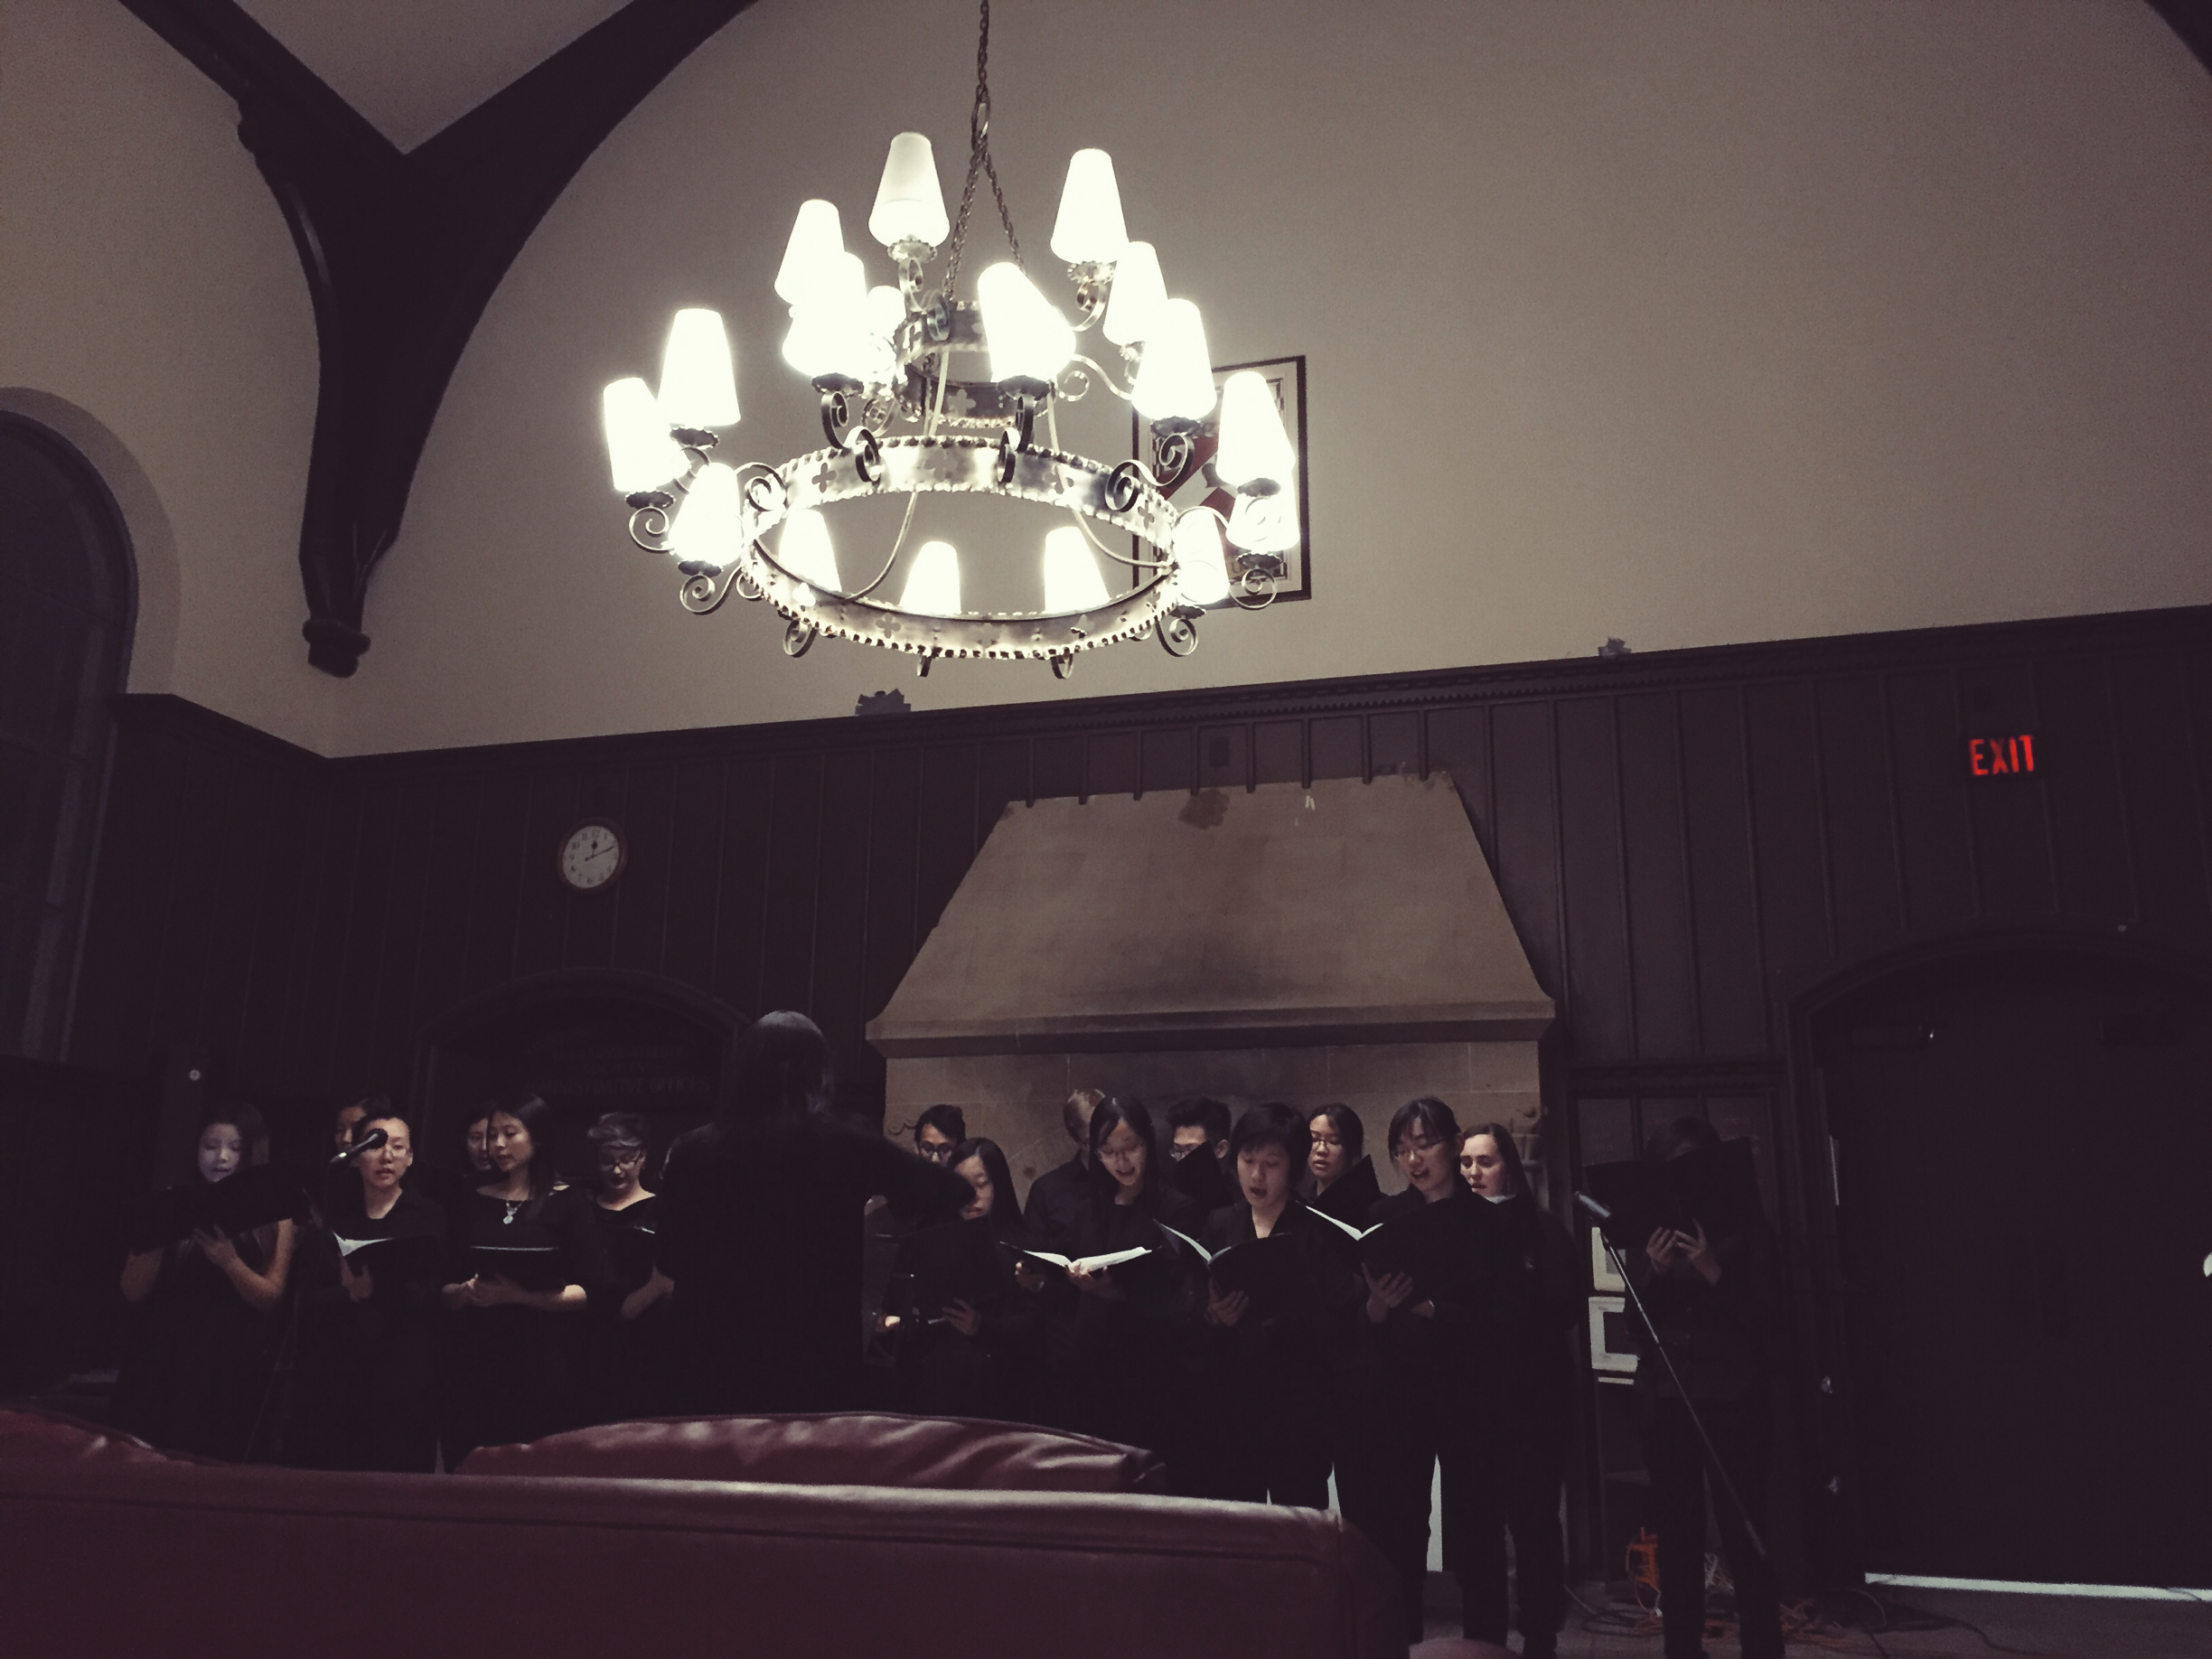 The group of students from Innis Choir performing in the JCR. A conductor helps keep the singers in sync.